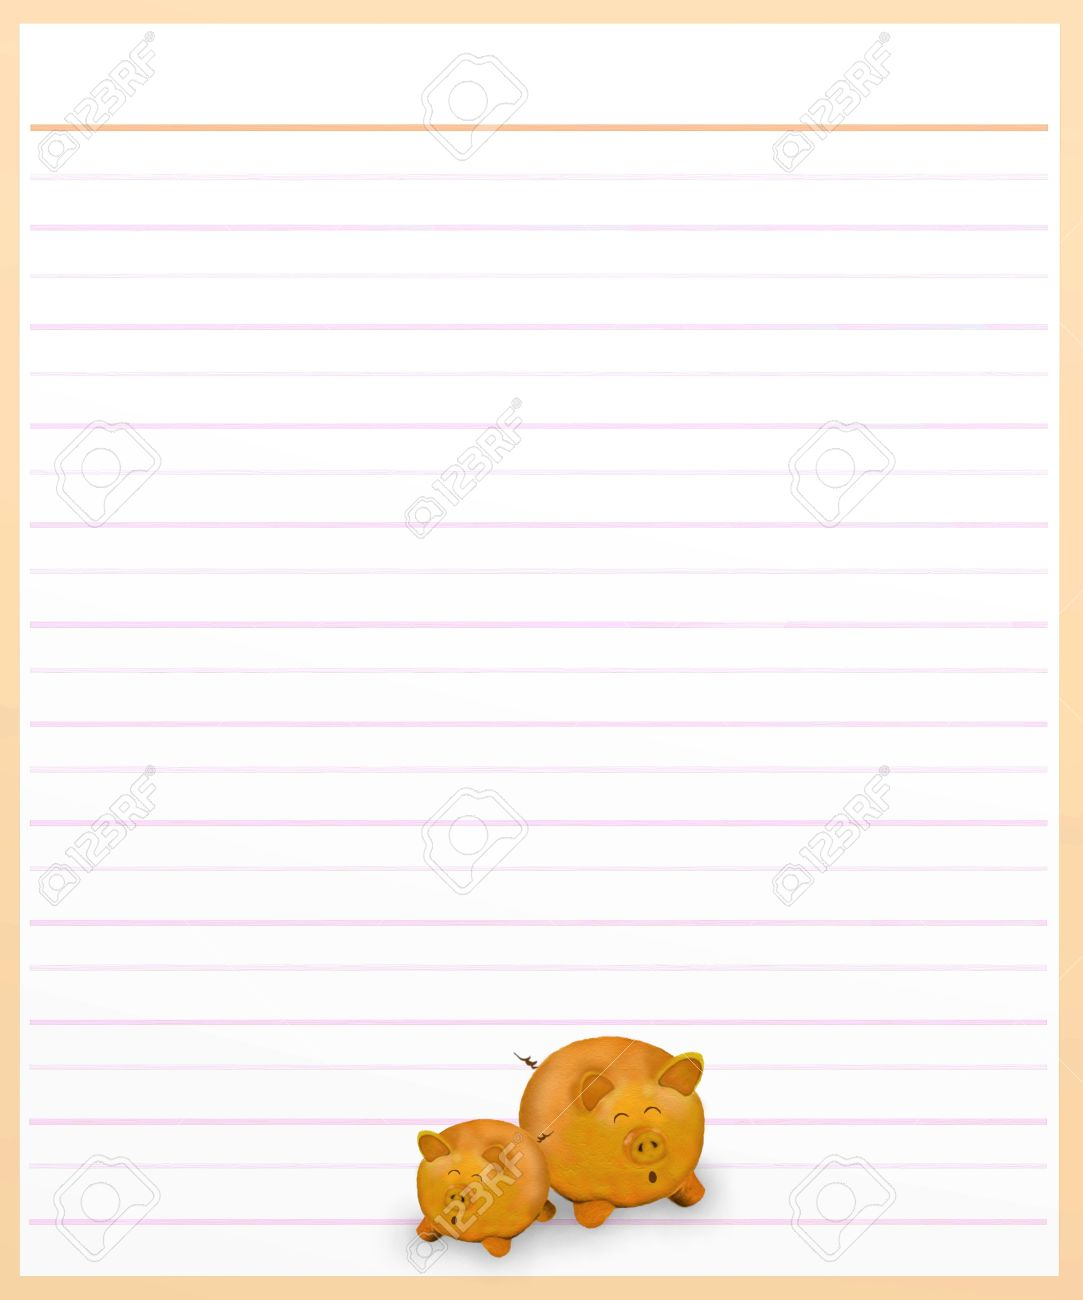 Hand Drawing of Two Lovely Pig on A Blank Brown Lined Paper Background with Copy Space for Text Decorated Stock Photo - 17417526